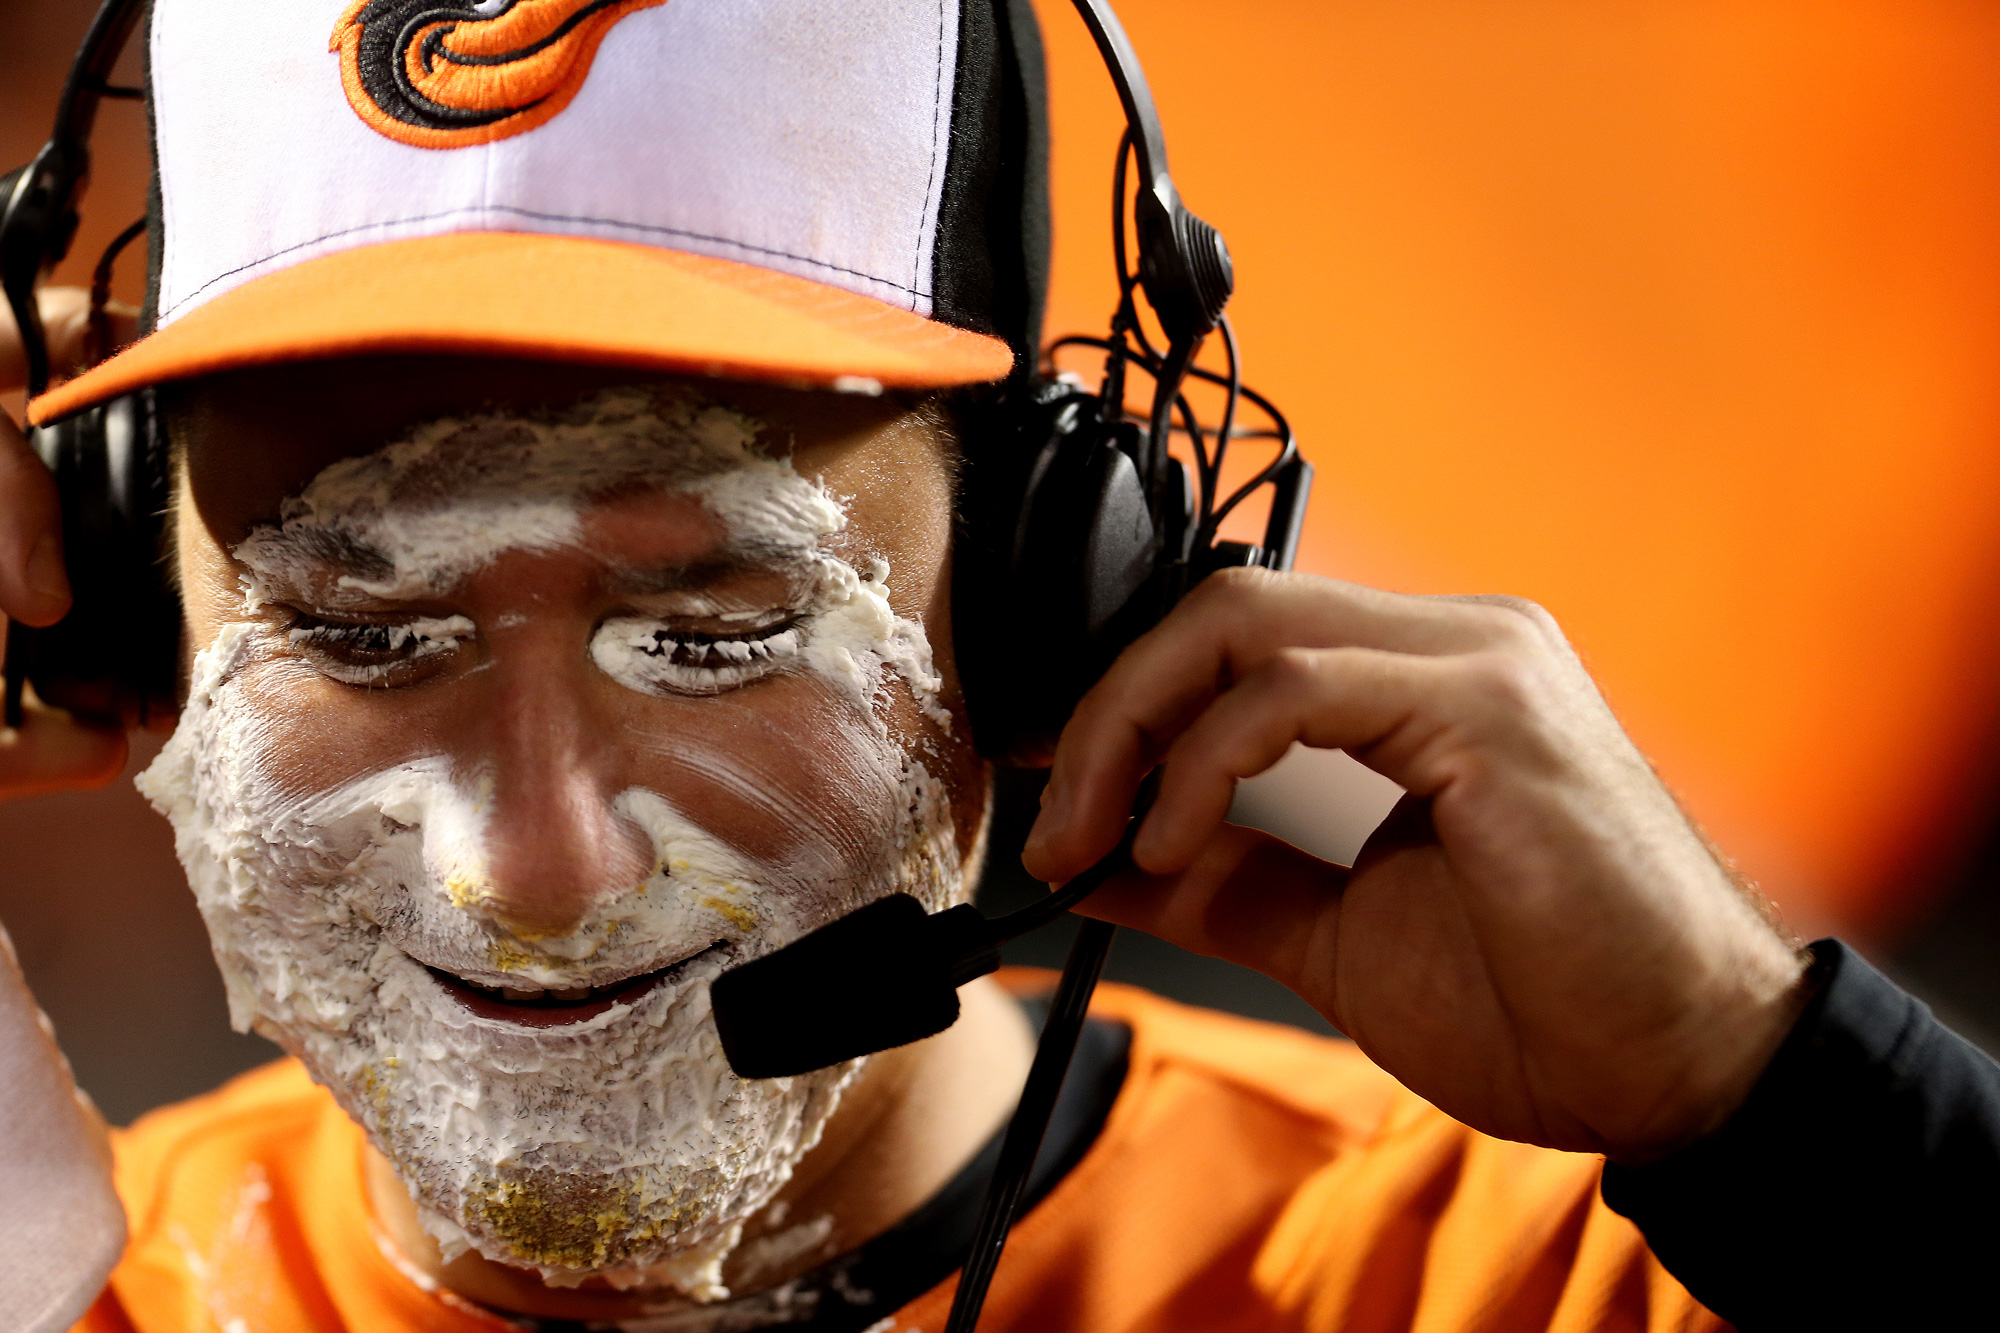 Paul Janish #15 of the Baltimore Orioles looks on after getting pied after defeating the New York Yankees at Orioles Park at Camden Yards on October 3, 3015 in Baltimore, Maryland.